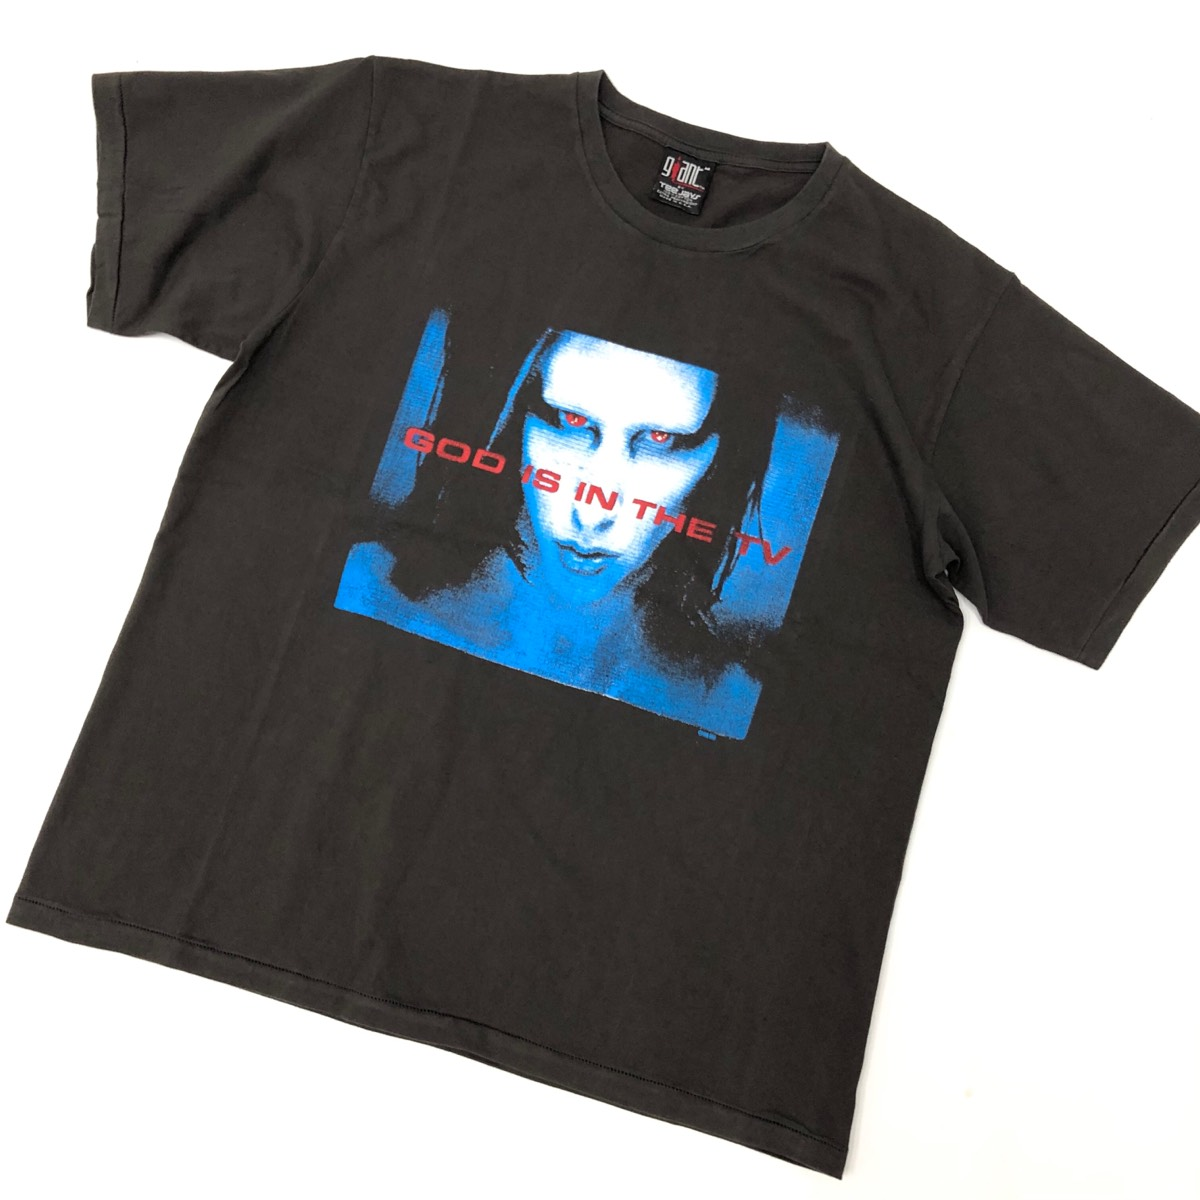 Marilyn Manson Vintage Band T Shirt